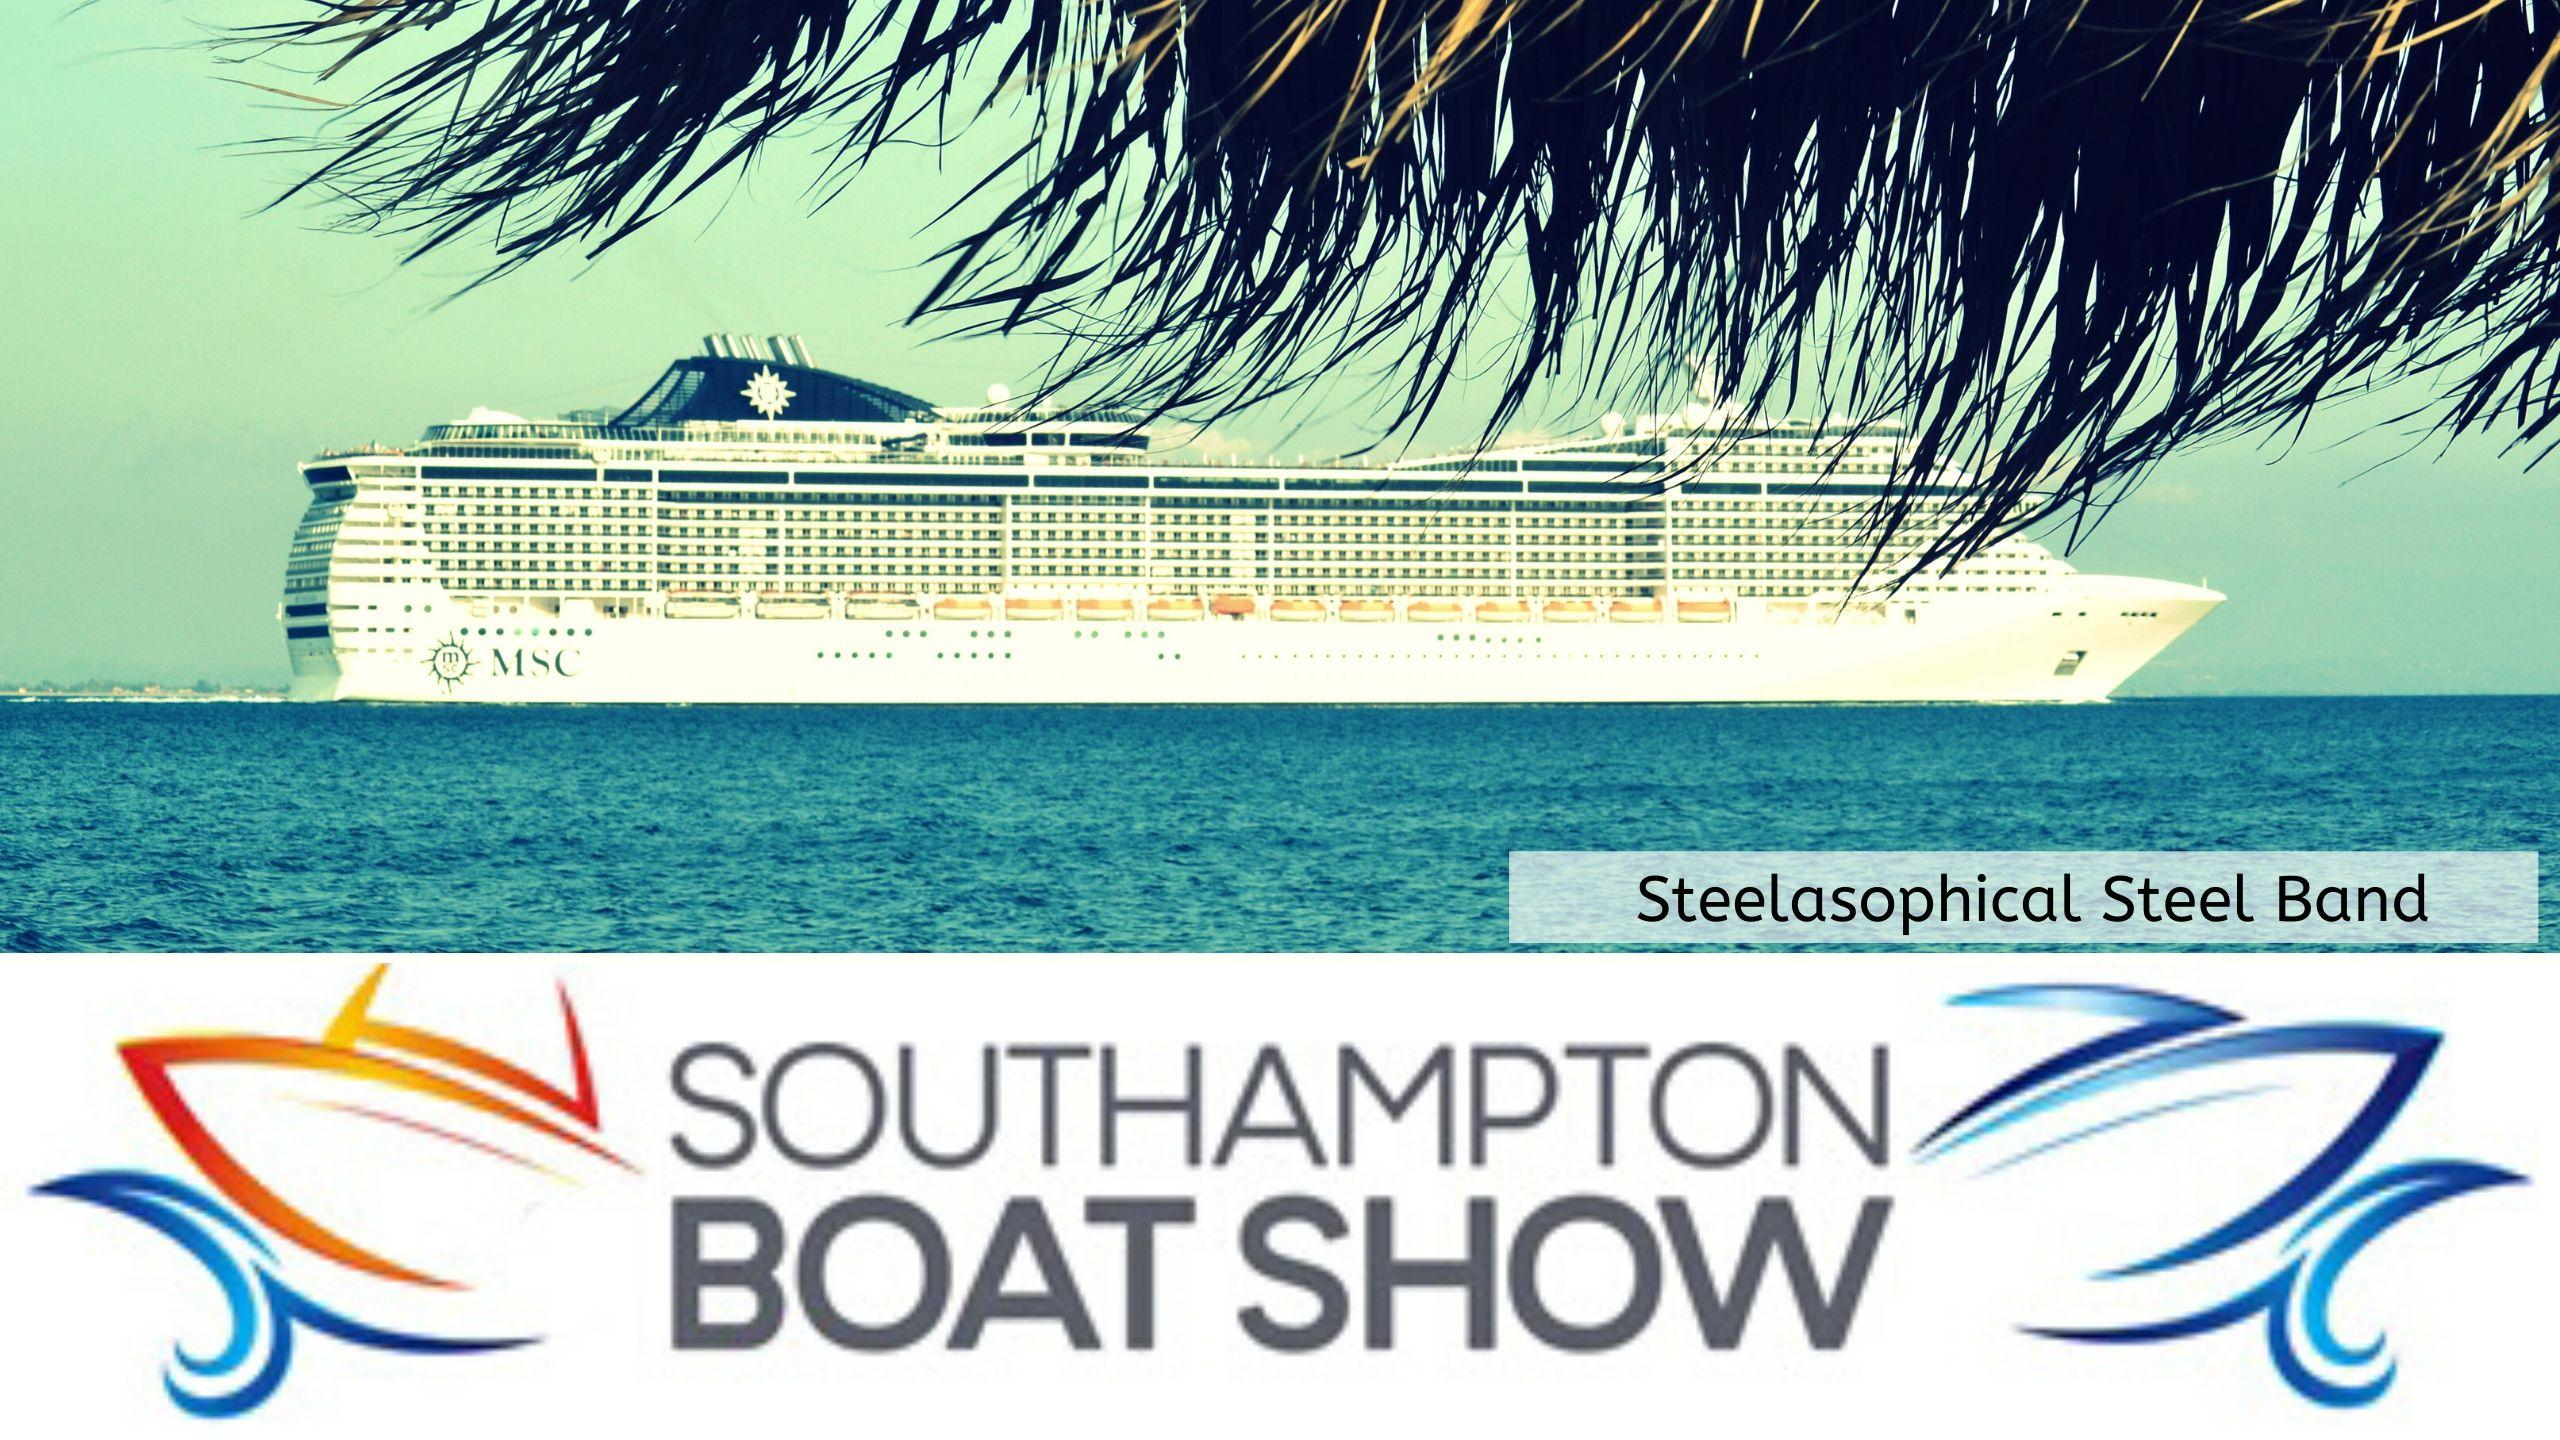 v Steelasophical Steel Band Soton Southampton Boat Show YachtMarket Yacht Market